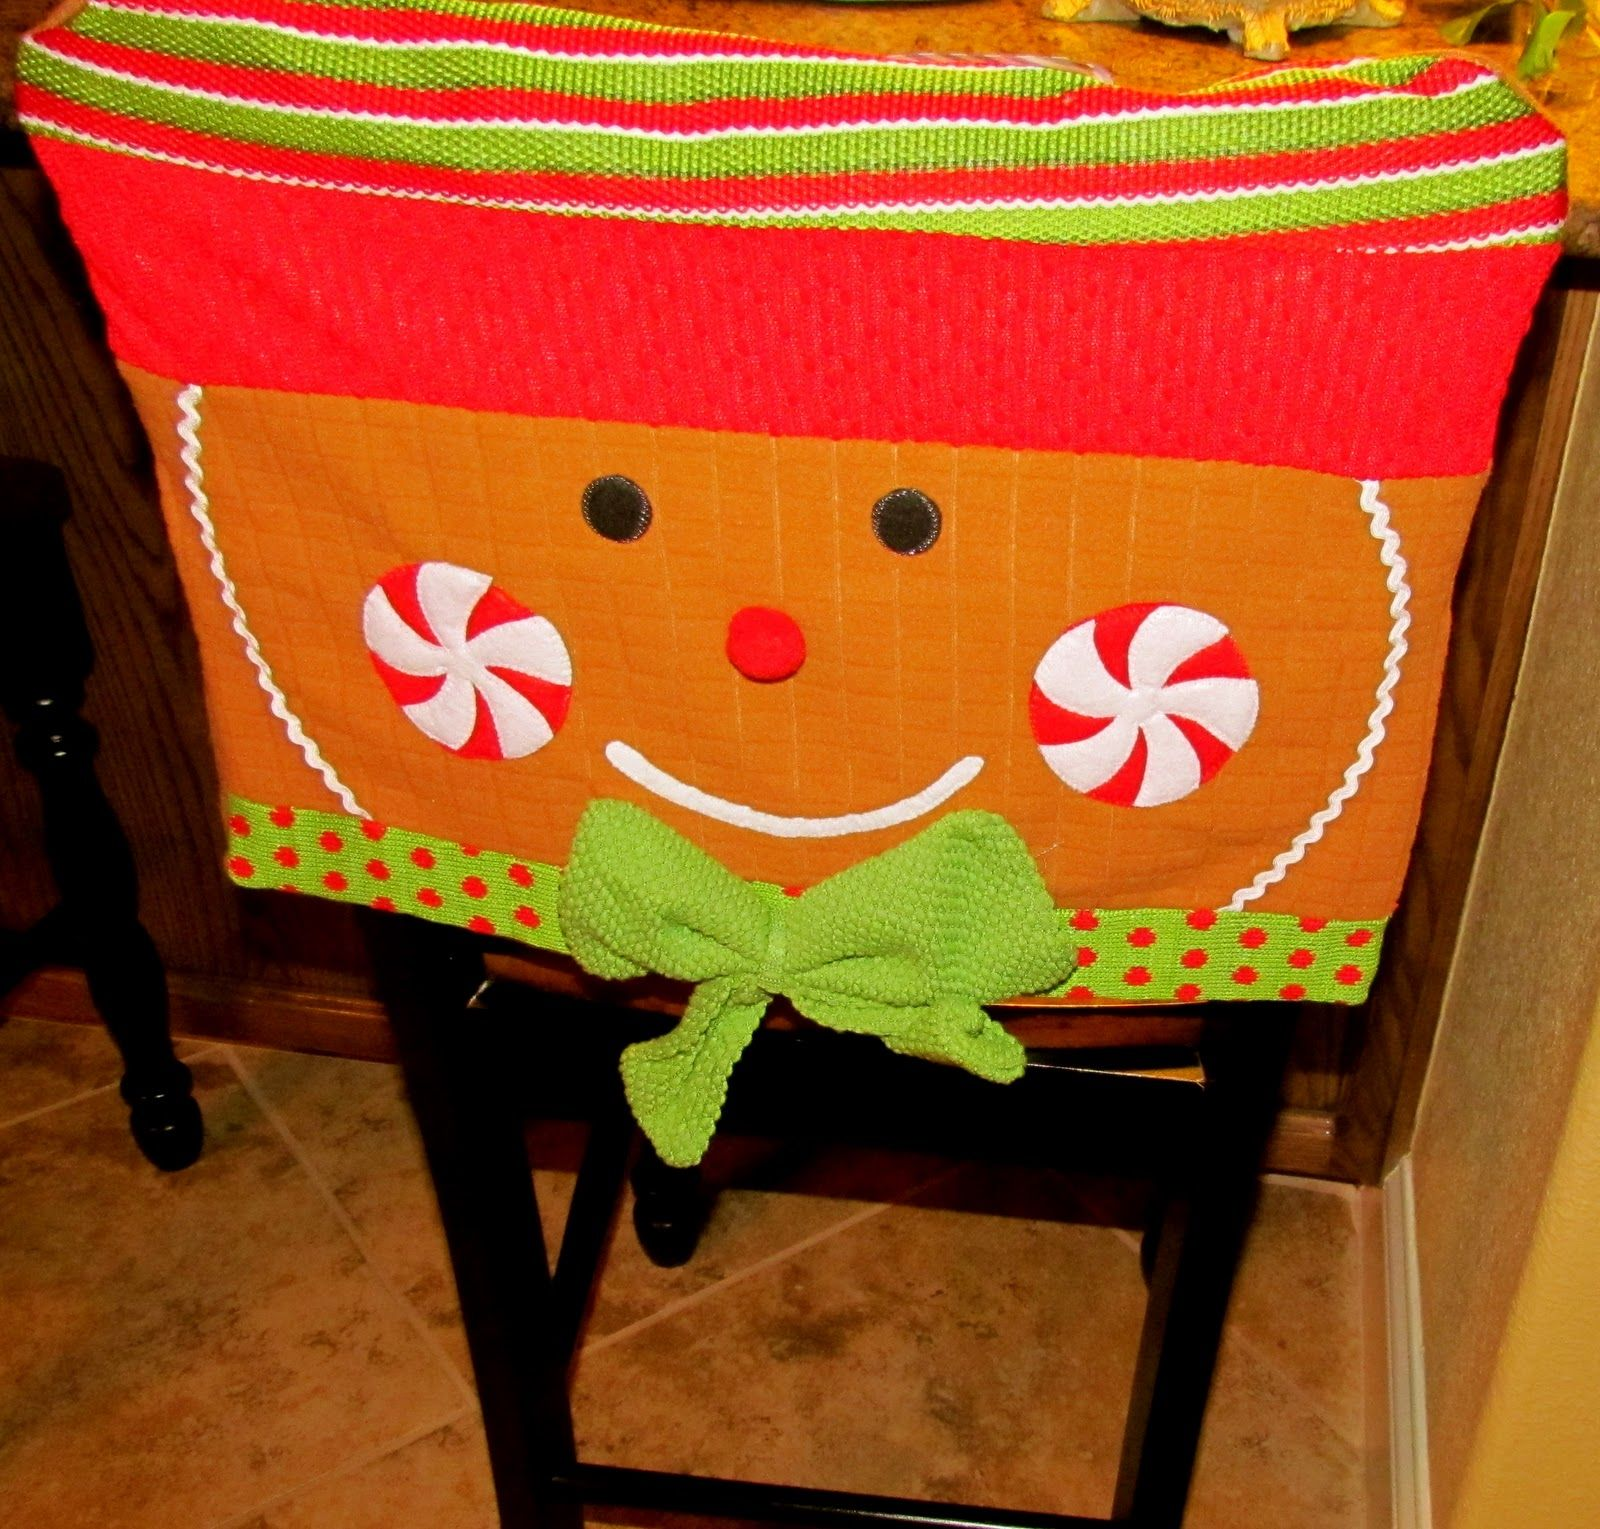 Christmas chair covers ideas - Christmas Bar Stool Covers Found These Cute Chair Covers For The Bar Stools In The